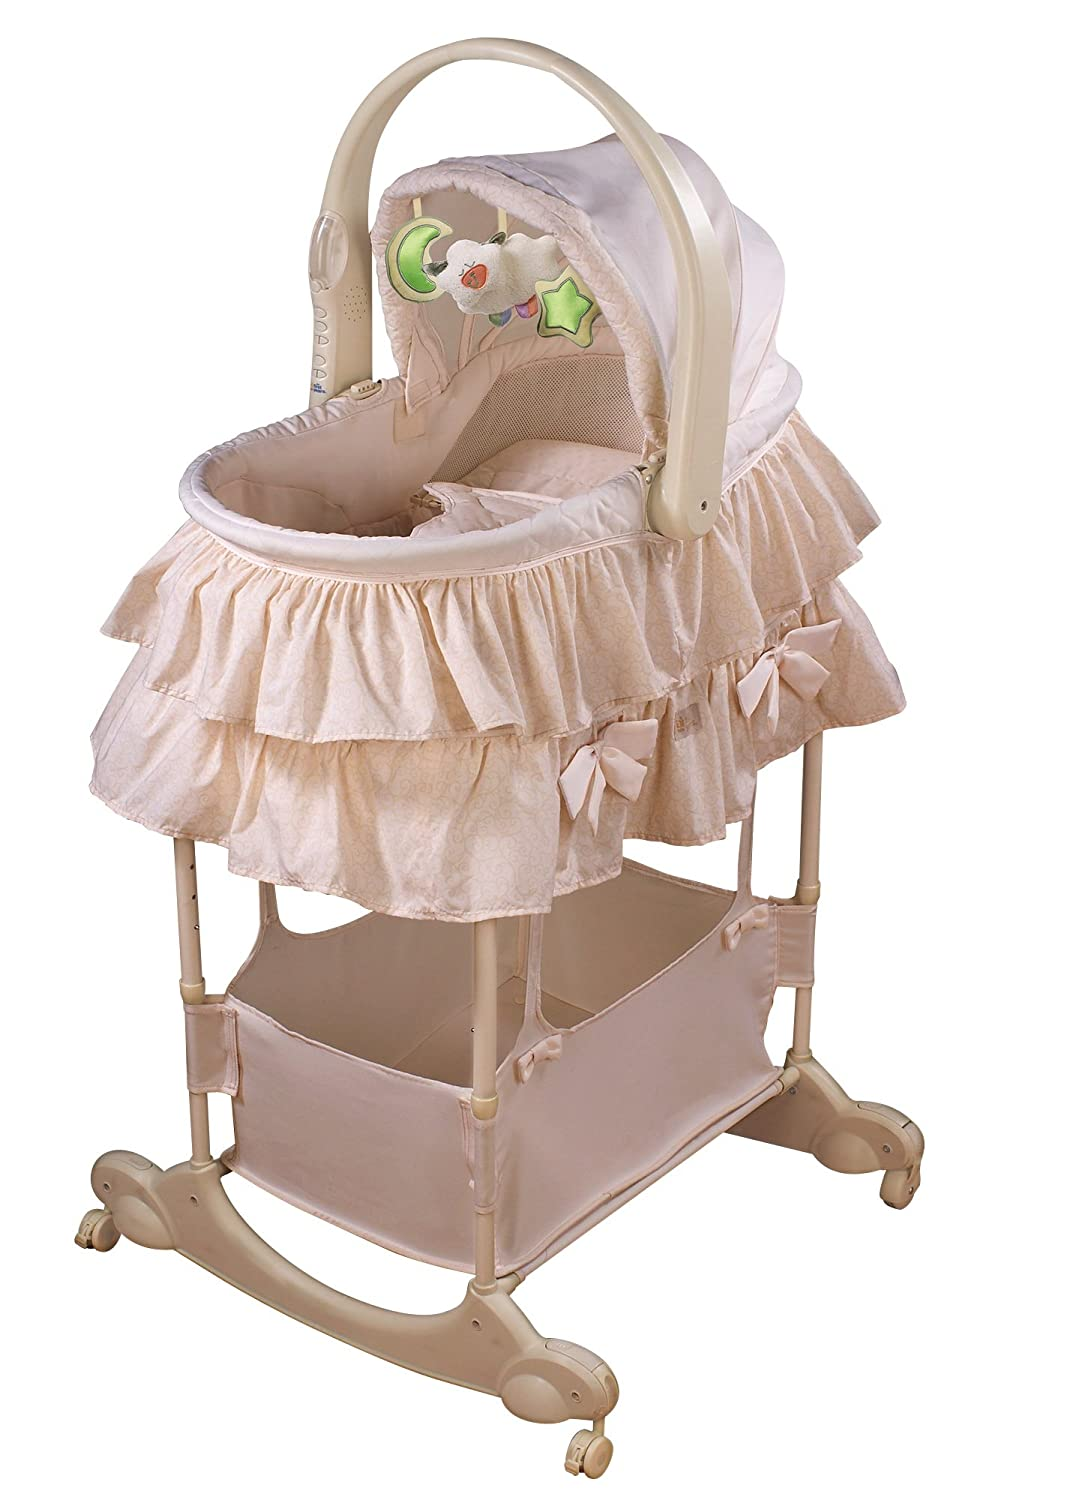 Babies Bassinet For Baby